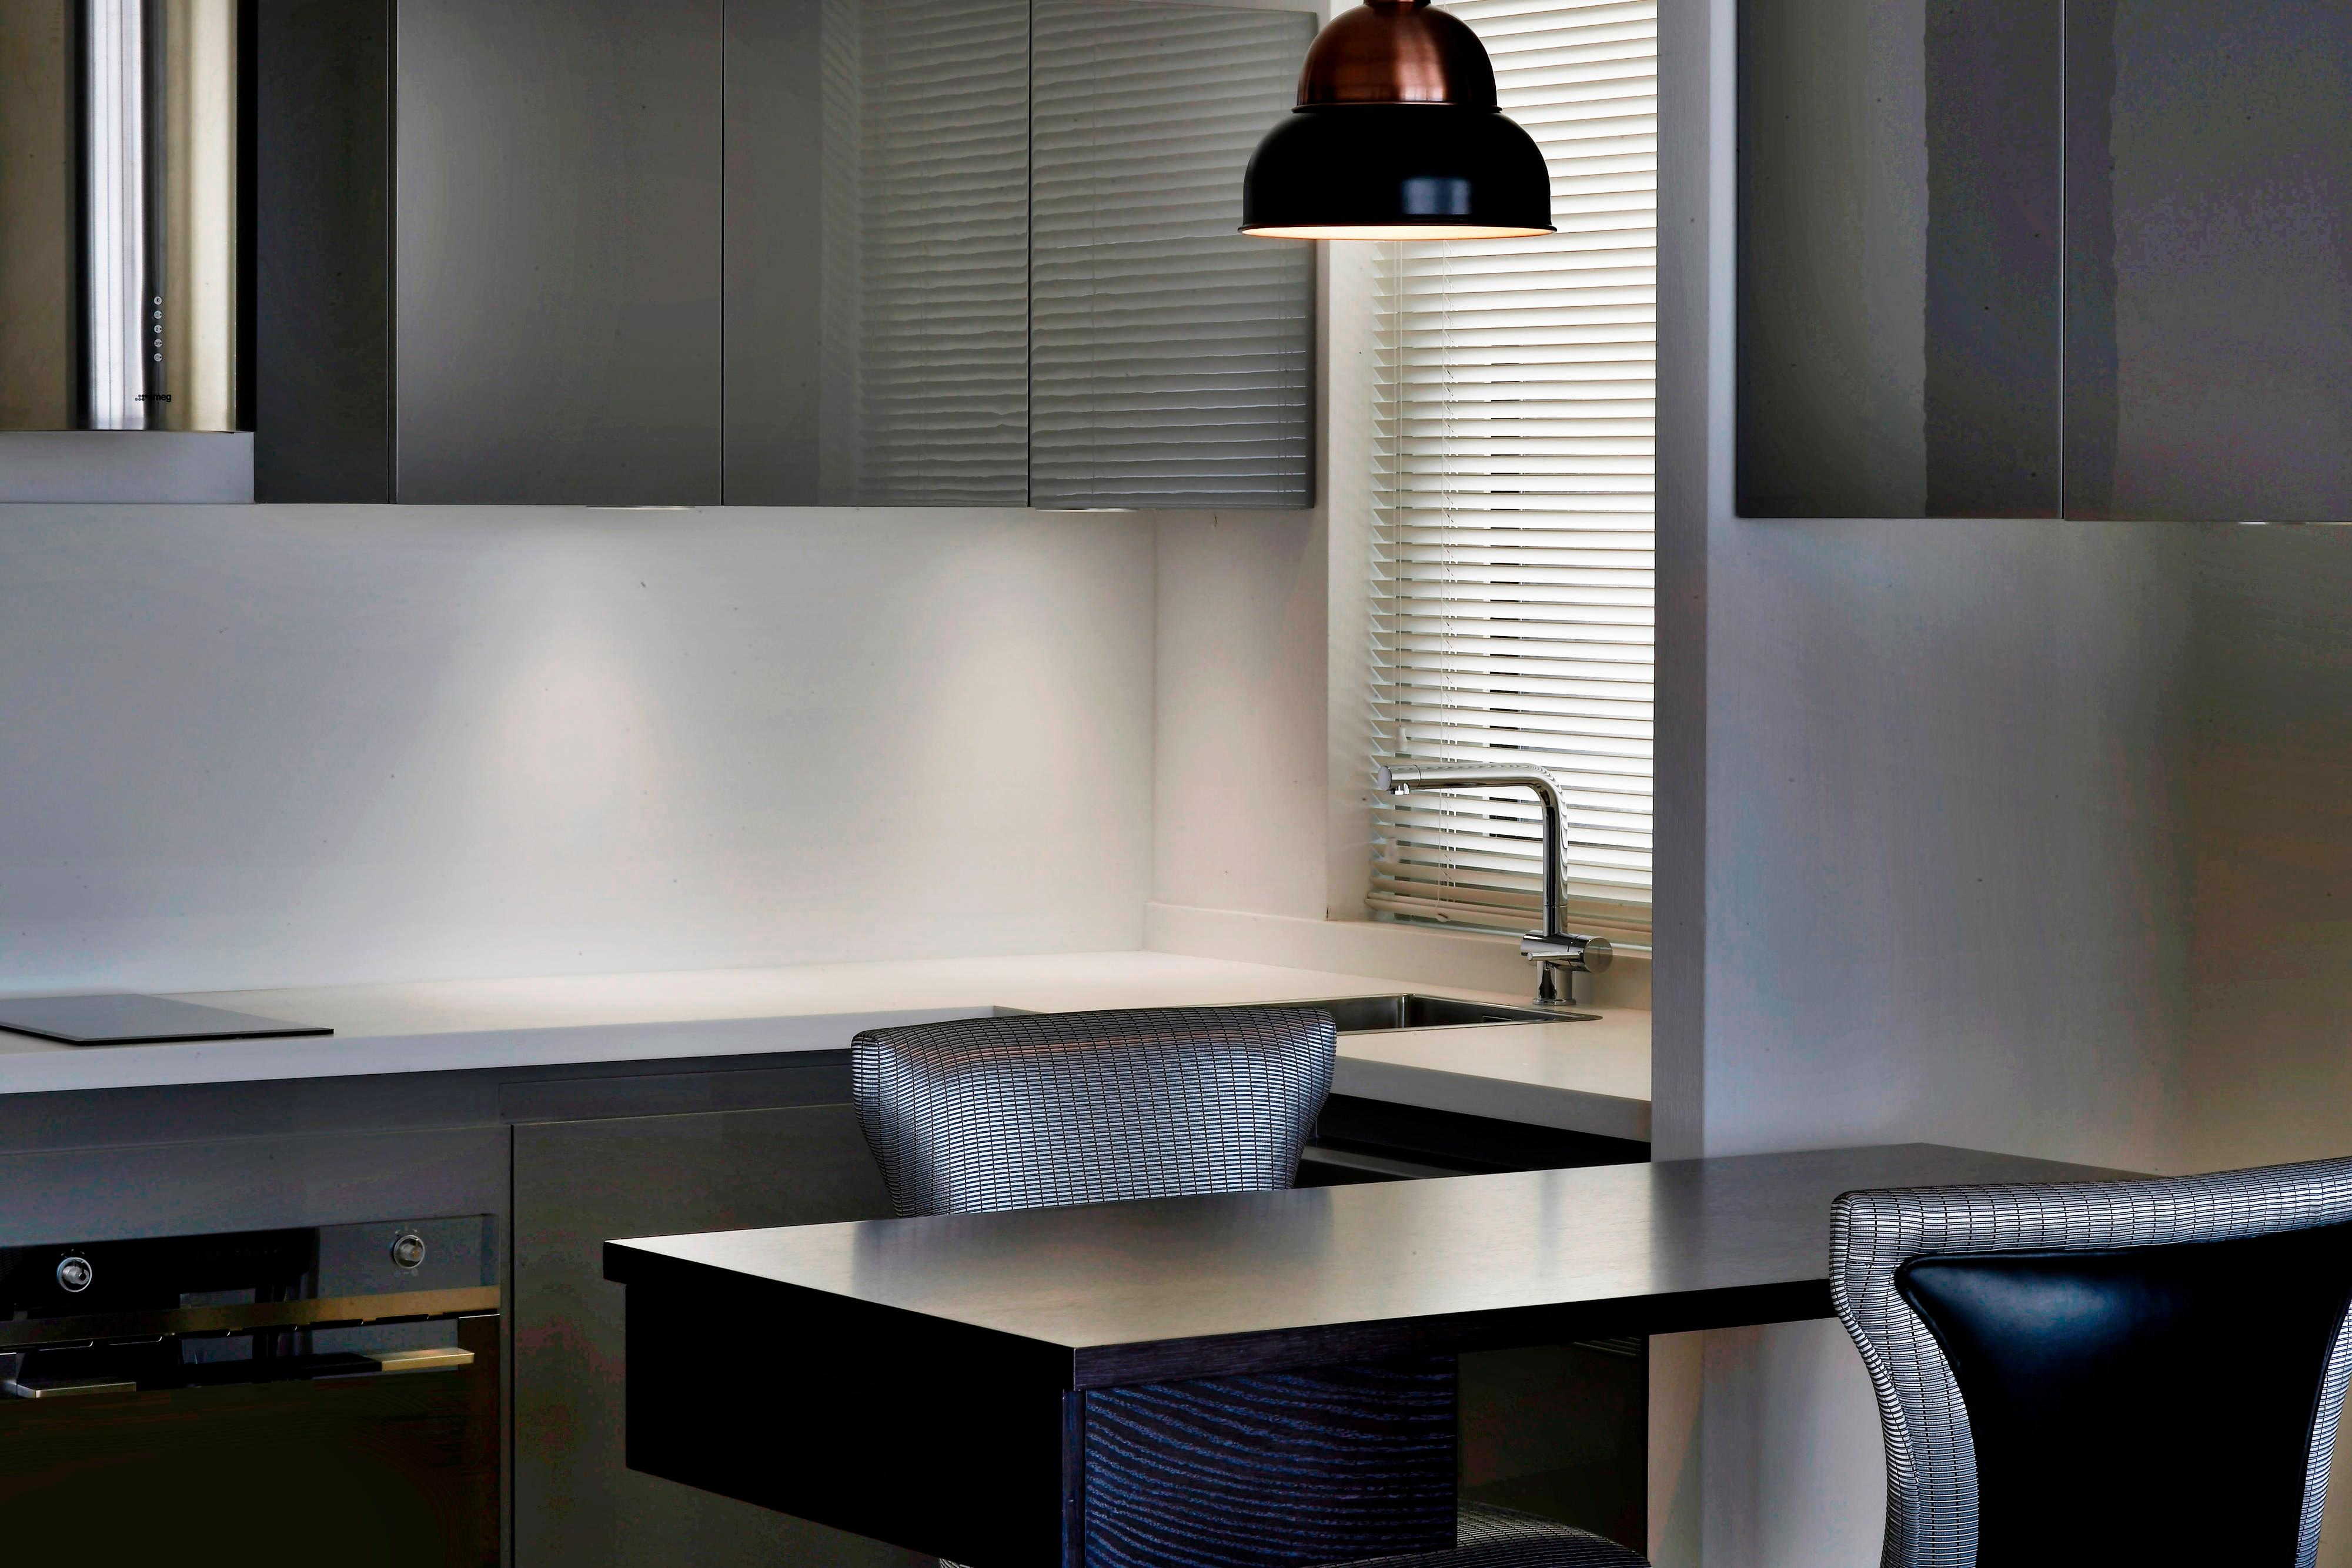 Kitchennette in Residential Suites